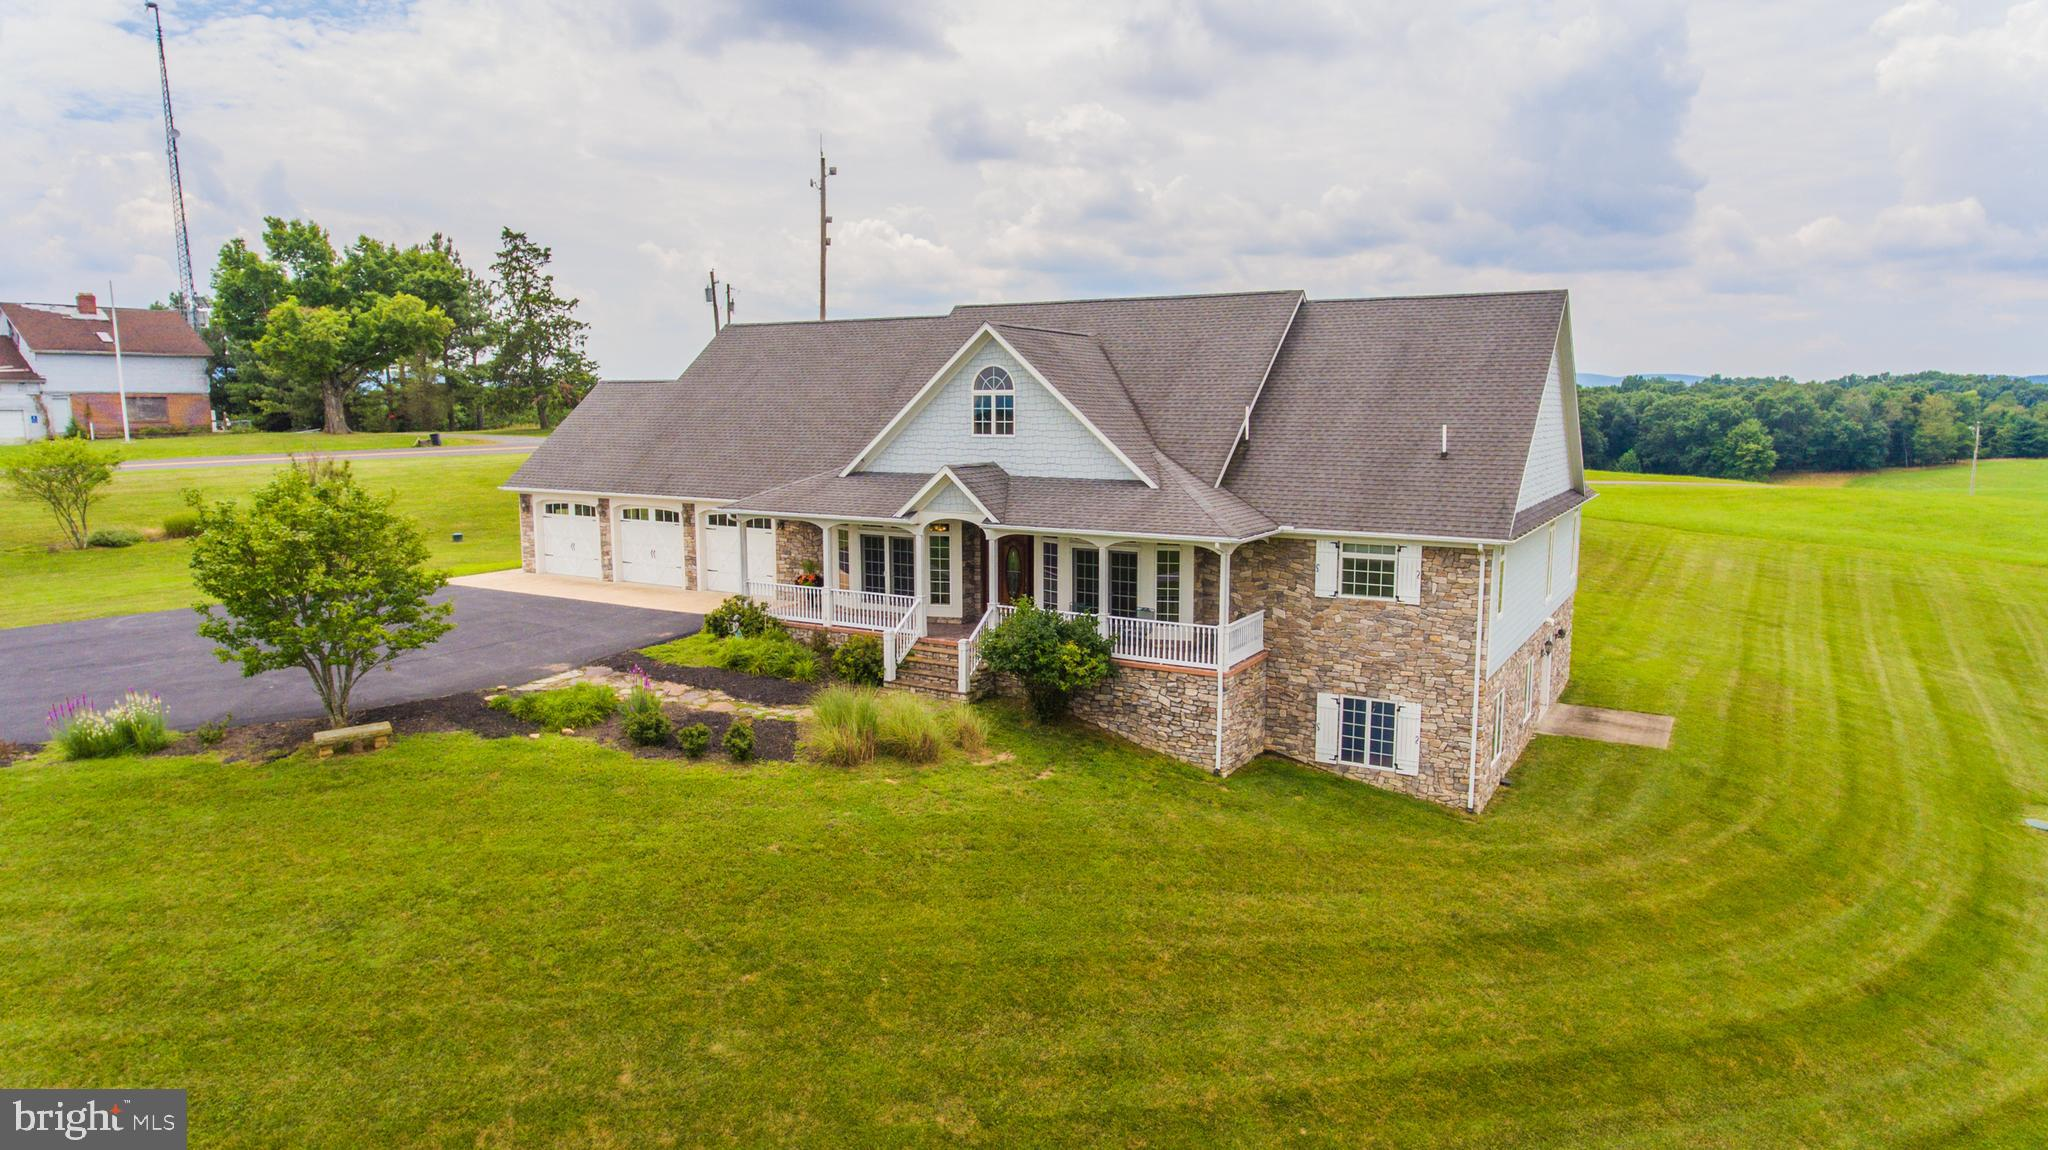 19 RACHEL LANE, BERKELEY SPRINGS, WV 25411